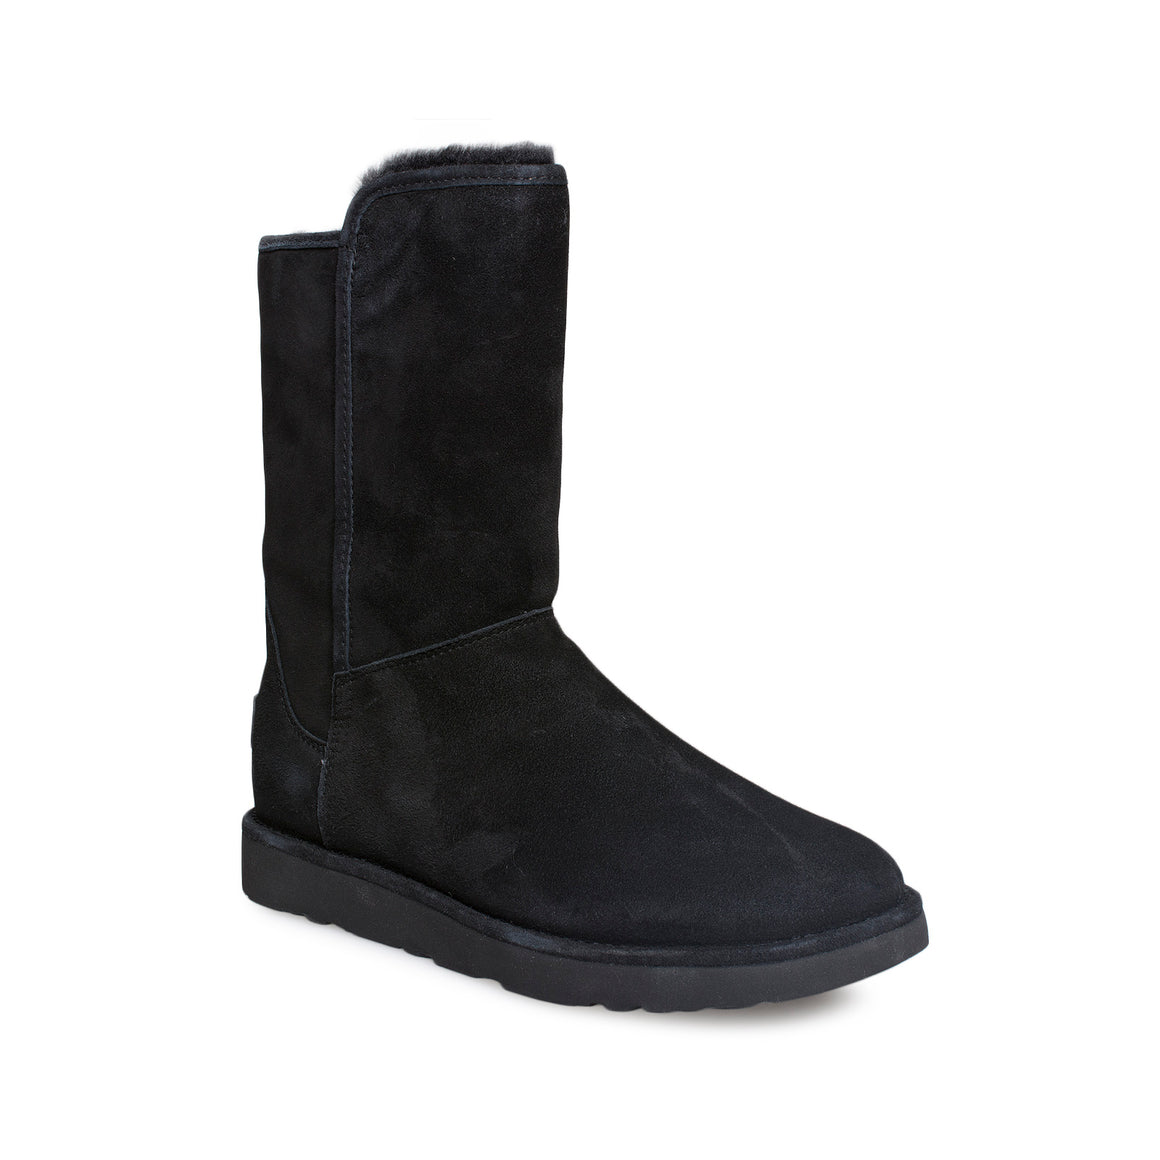 UGG Abree Short II Nero Boots - Women's